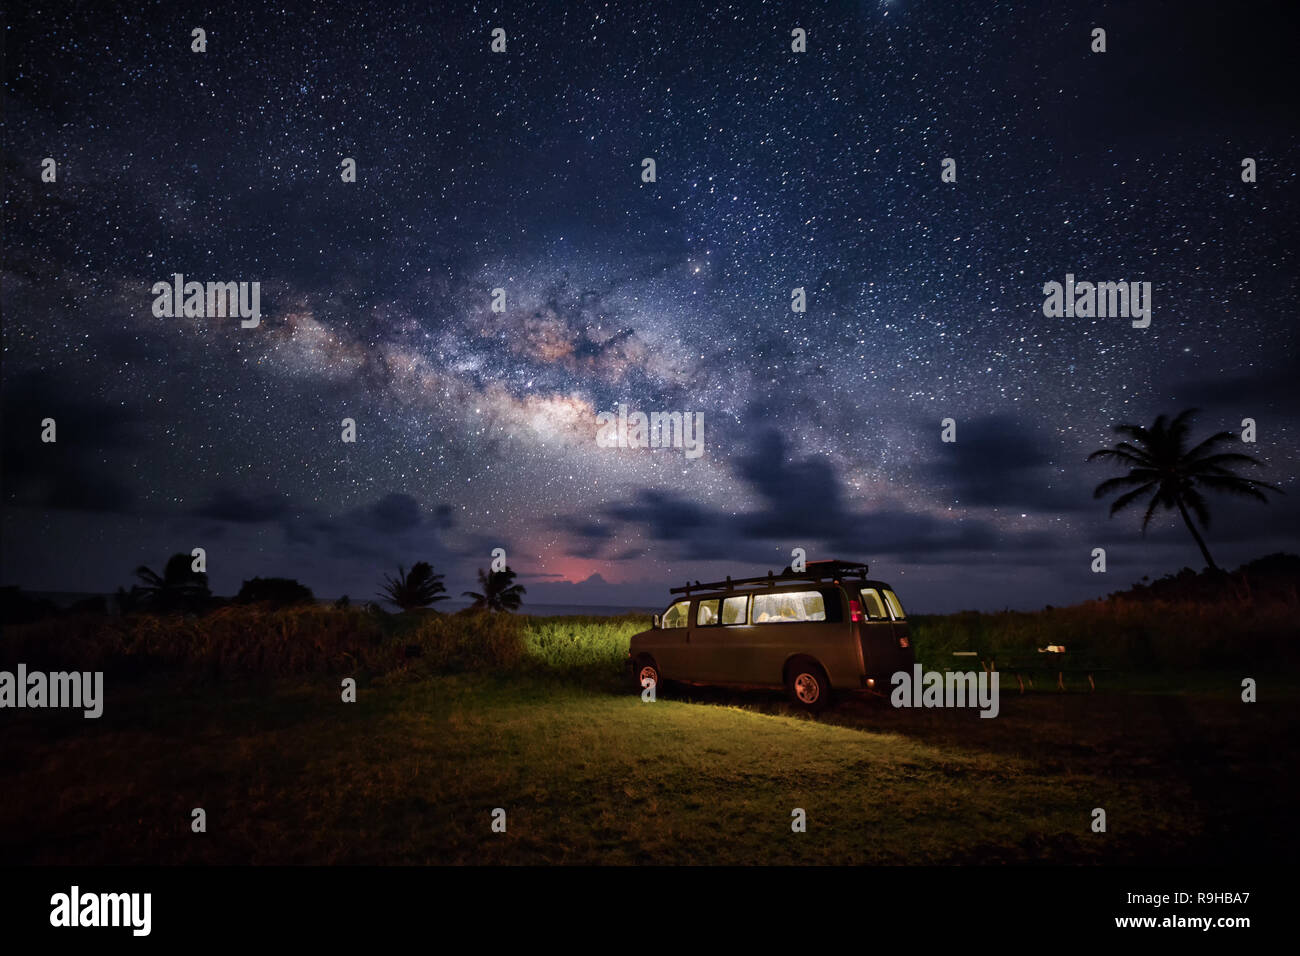 Milky Way photos road trip camper van Hawaii Stock Photo